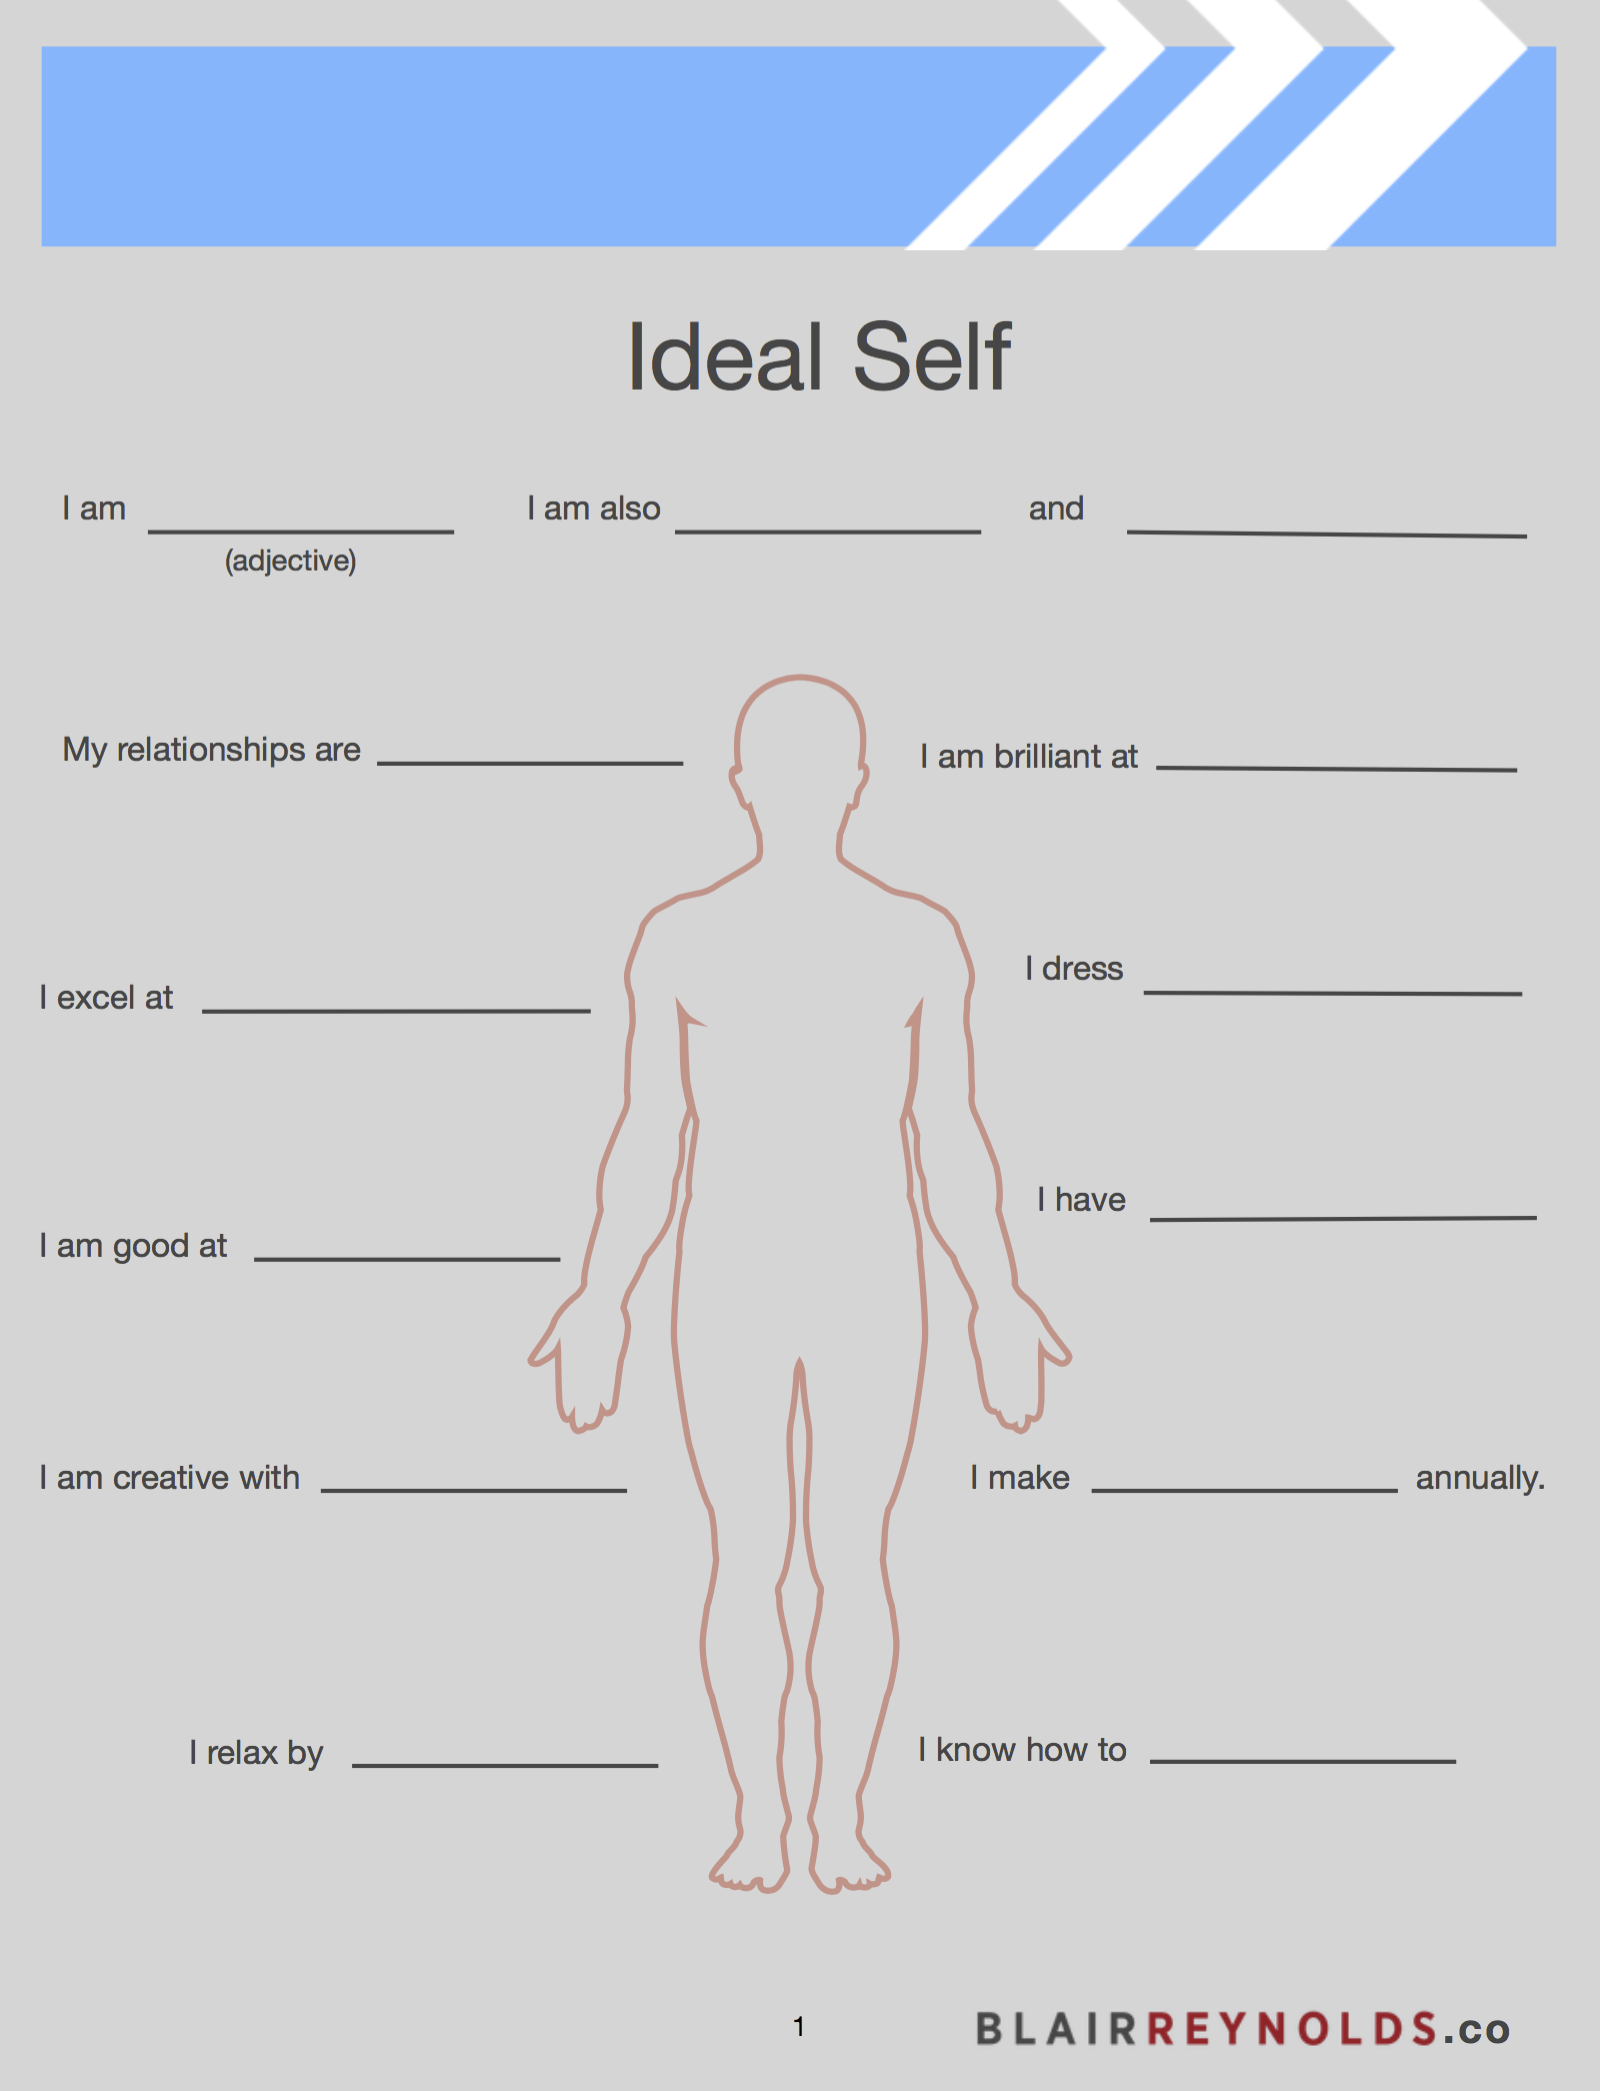 Ideal_Self.png